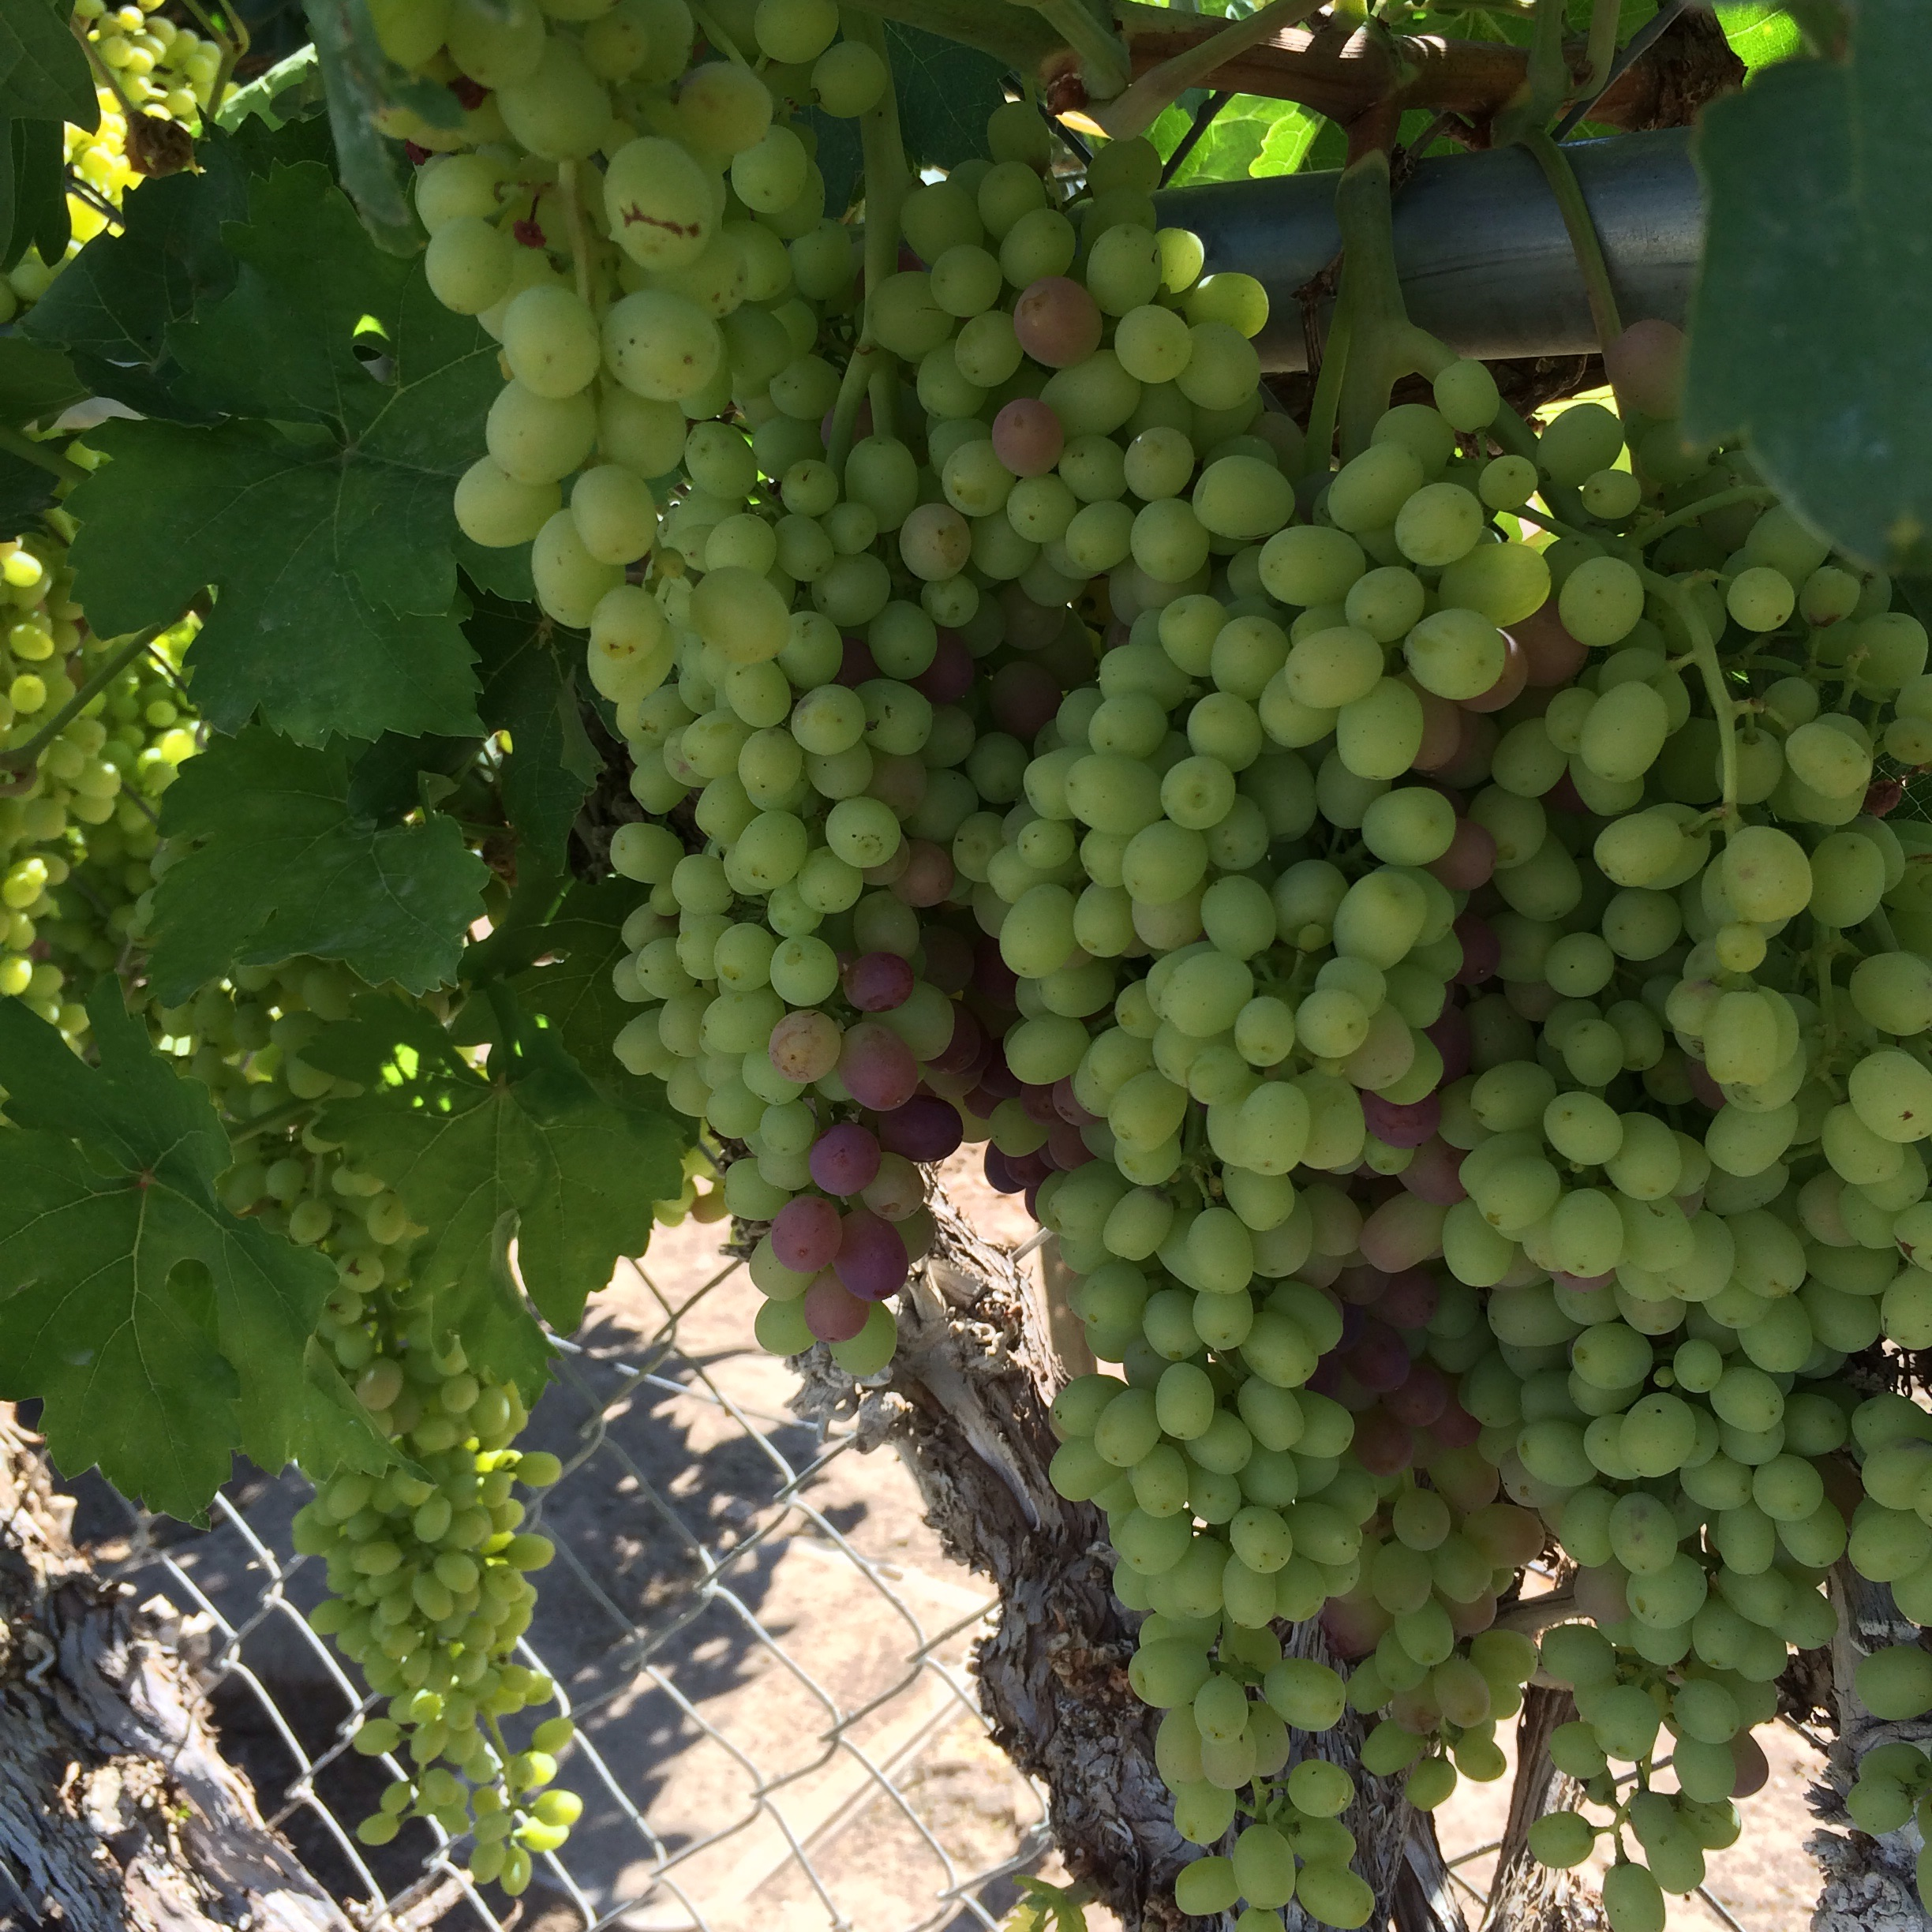 We have a few different types of grapes looks like a bumper crop this year